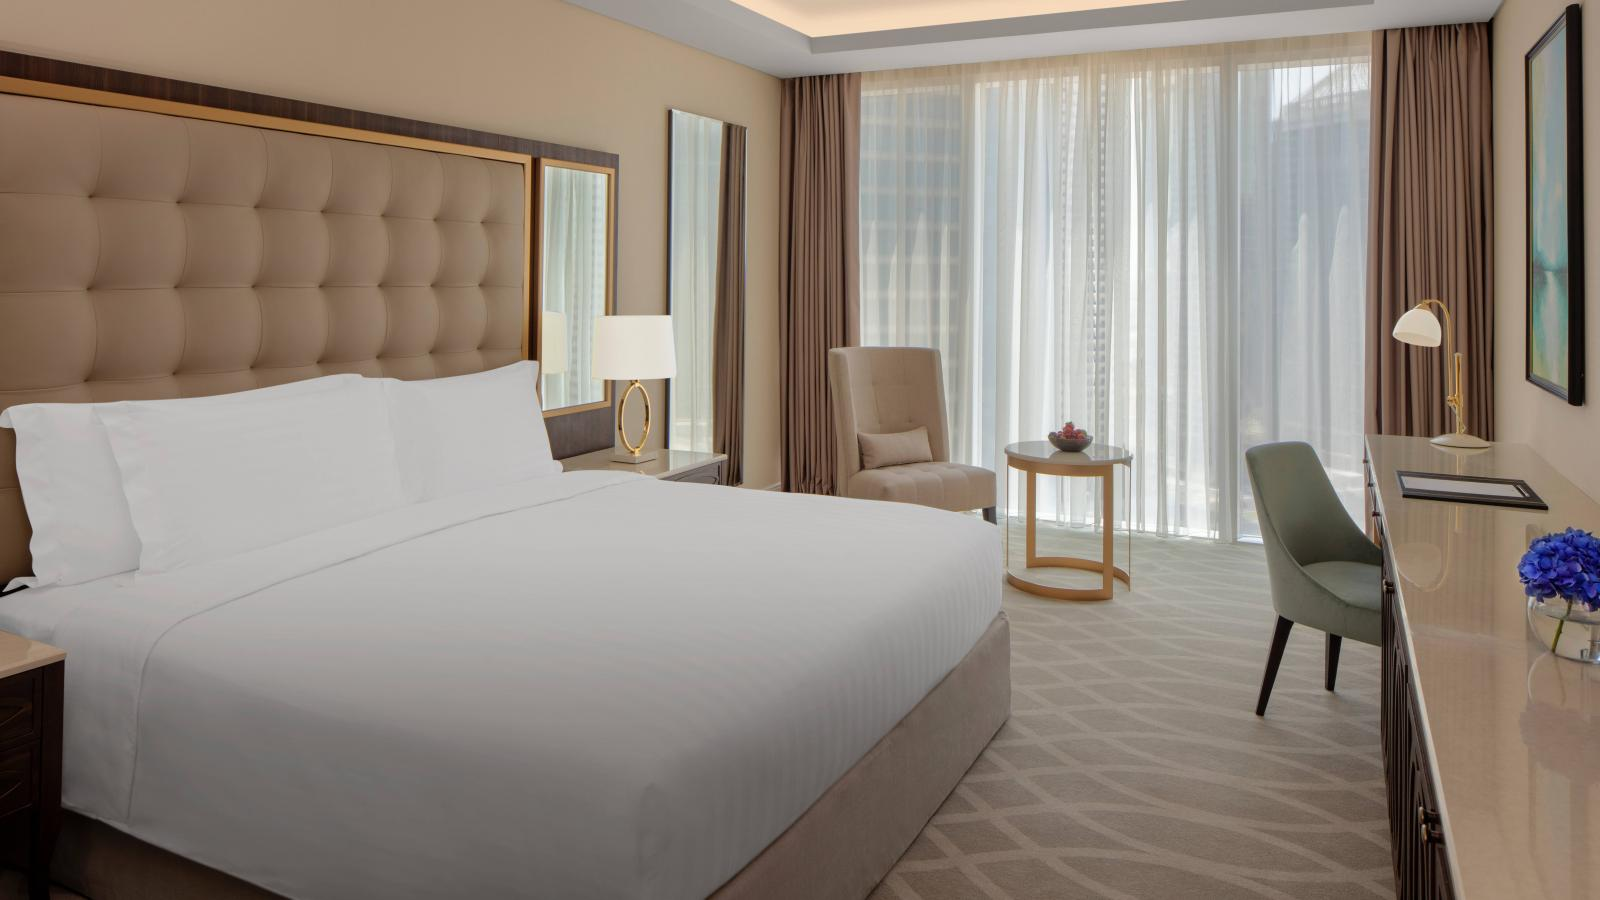 Celebtare Eid Al-Fitr with Dusit Doha Hotel's staycation offers